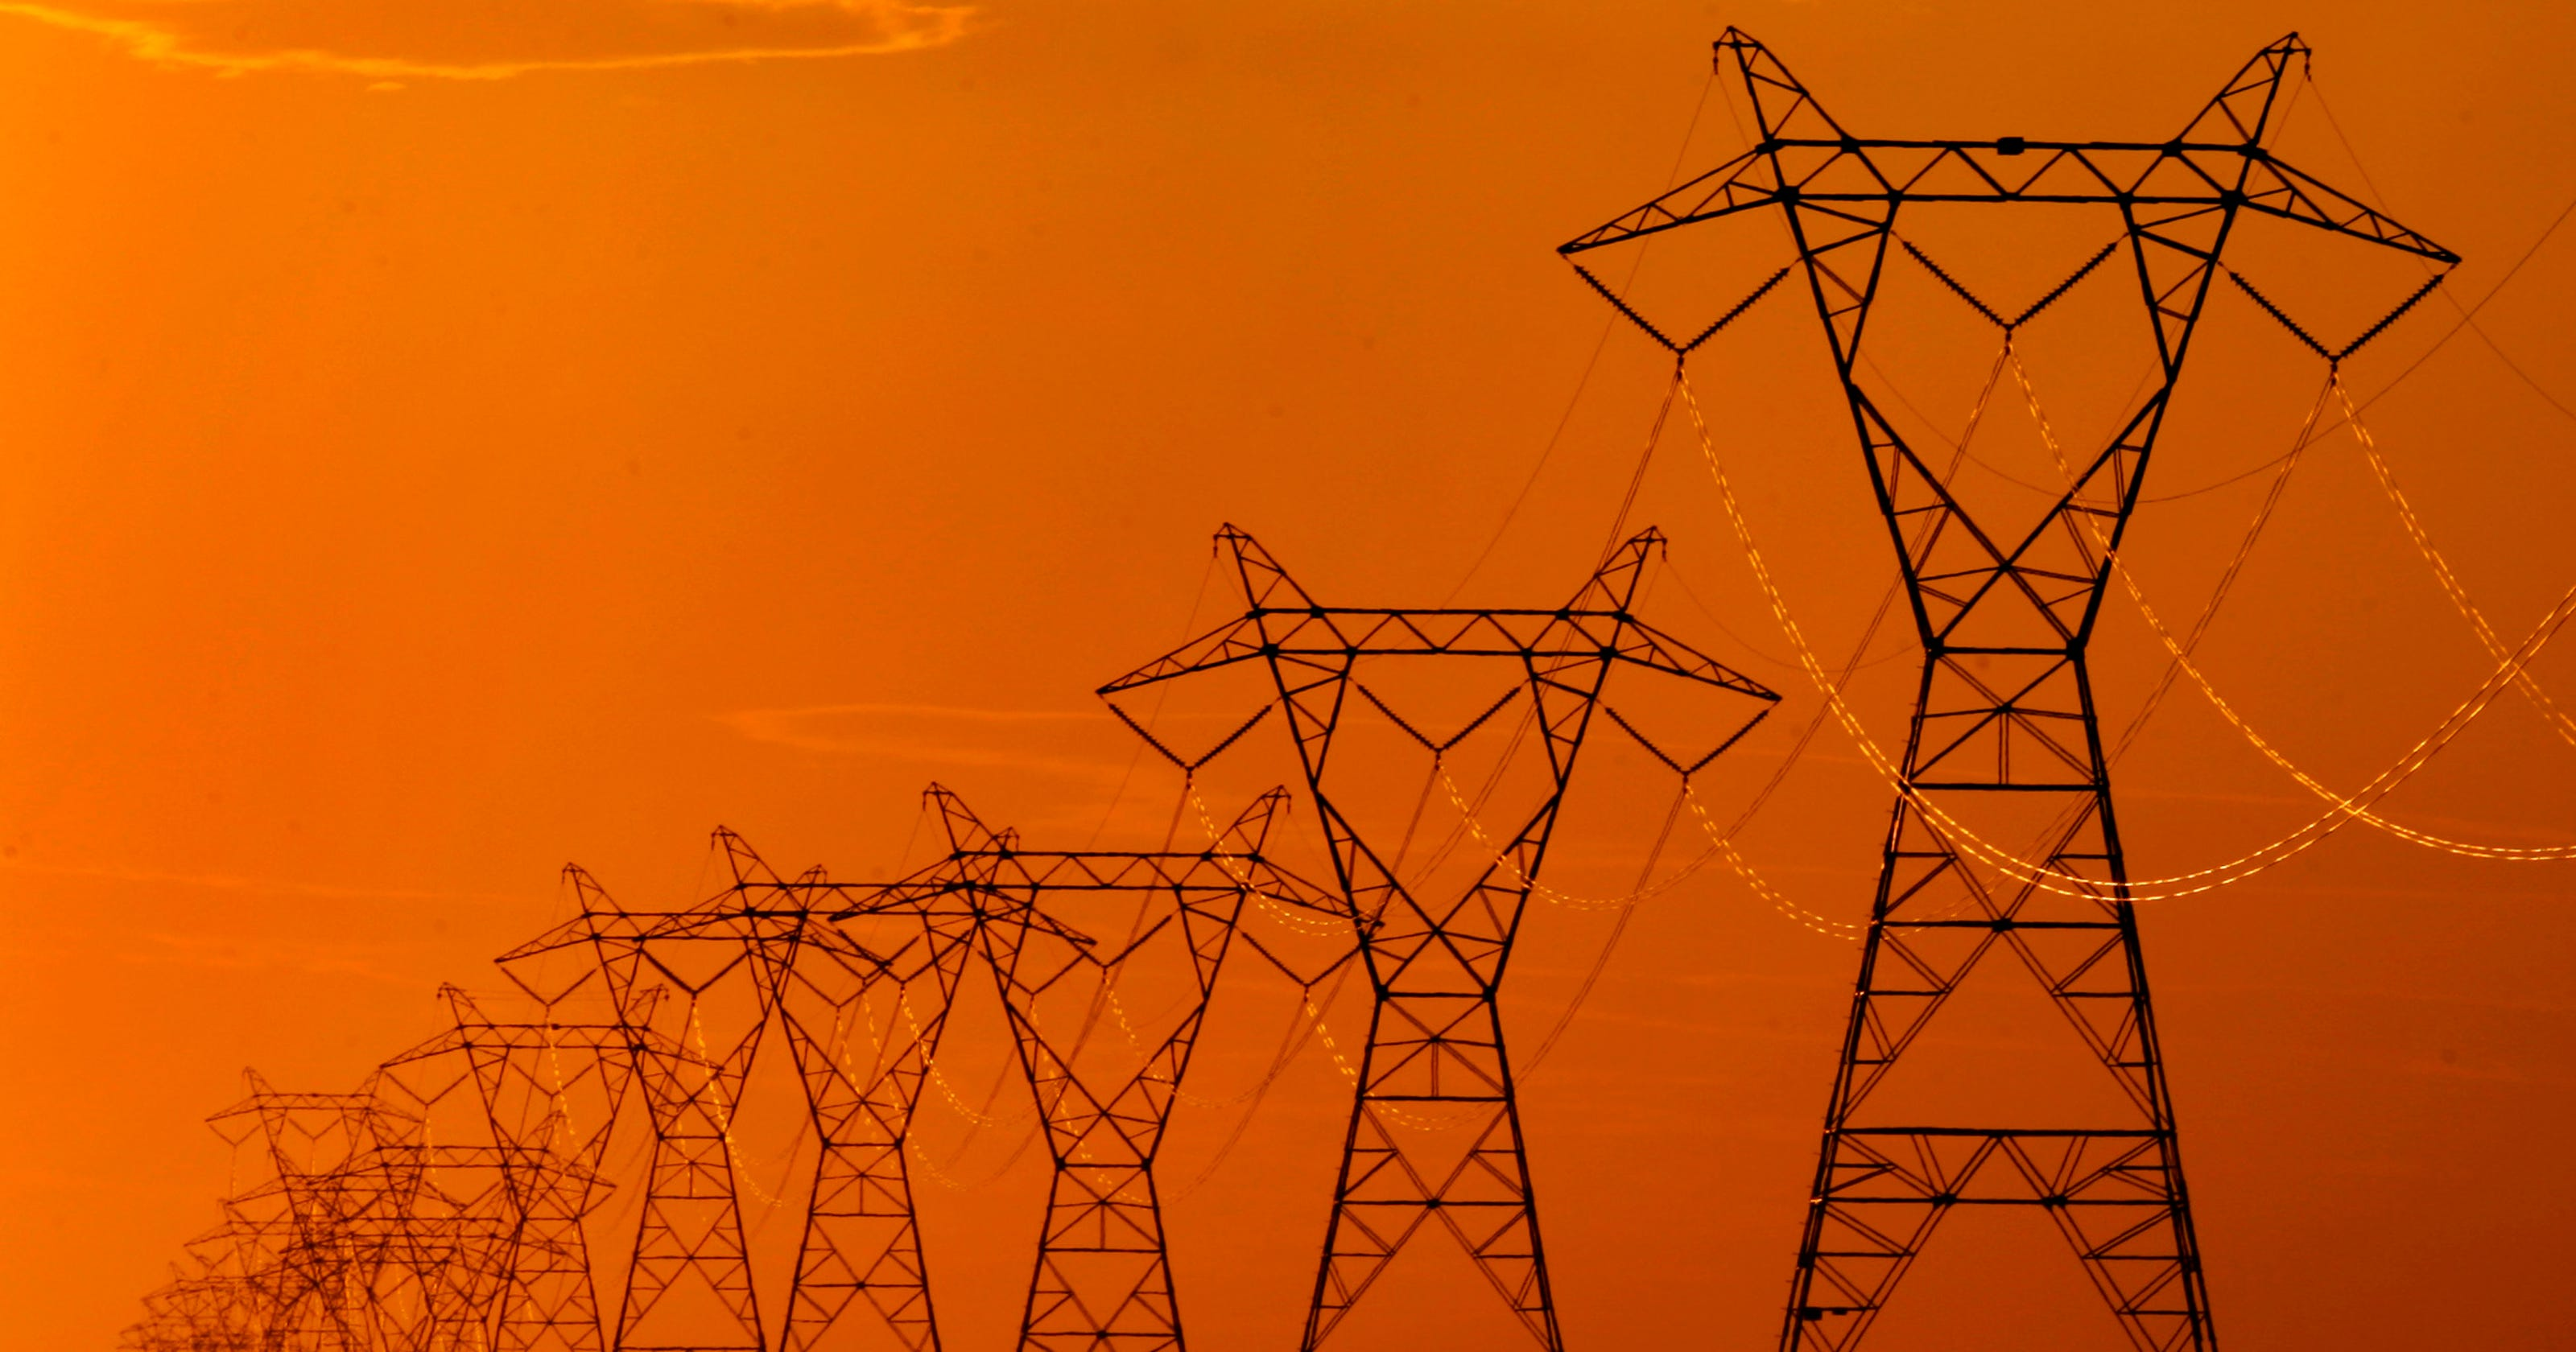 Murfreesboro Electric Dept Could Be Worth 247 Million